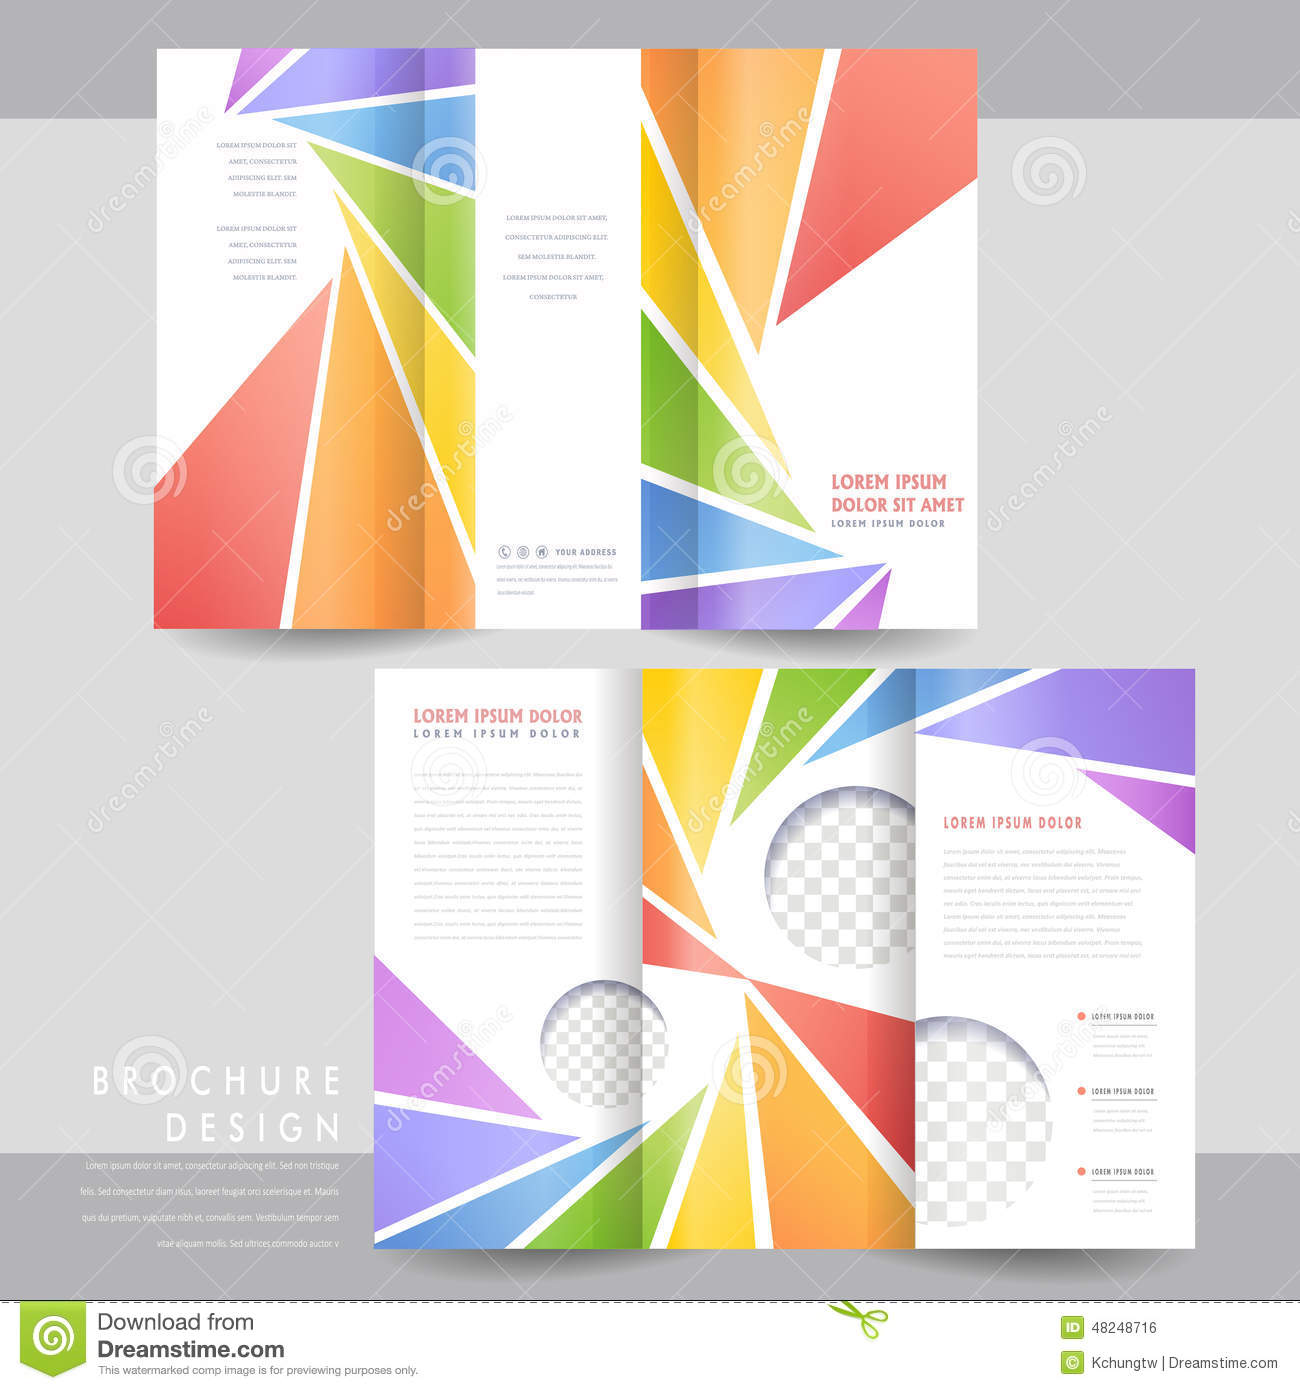 brochure template tri fold - colorful tri fold brochure template design stock vector